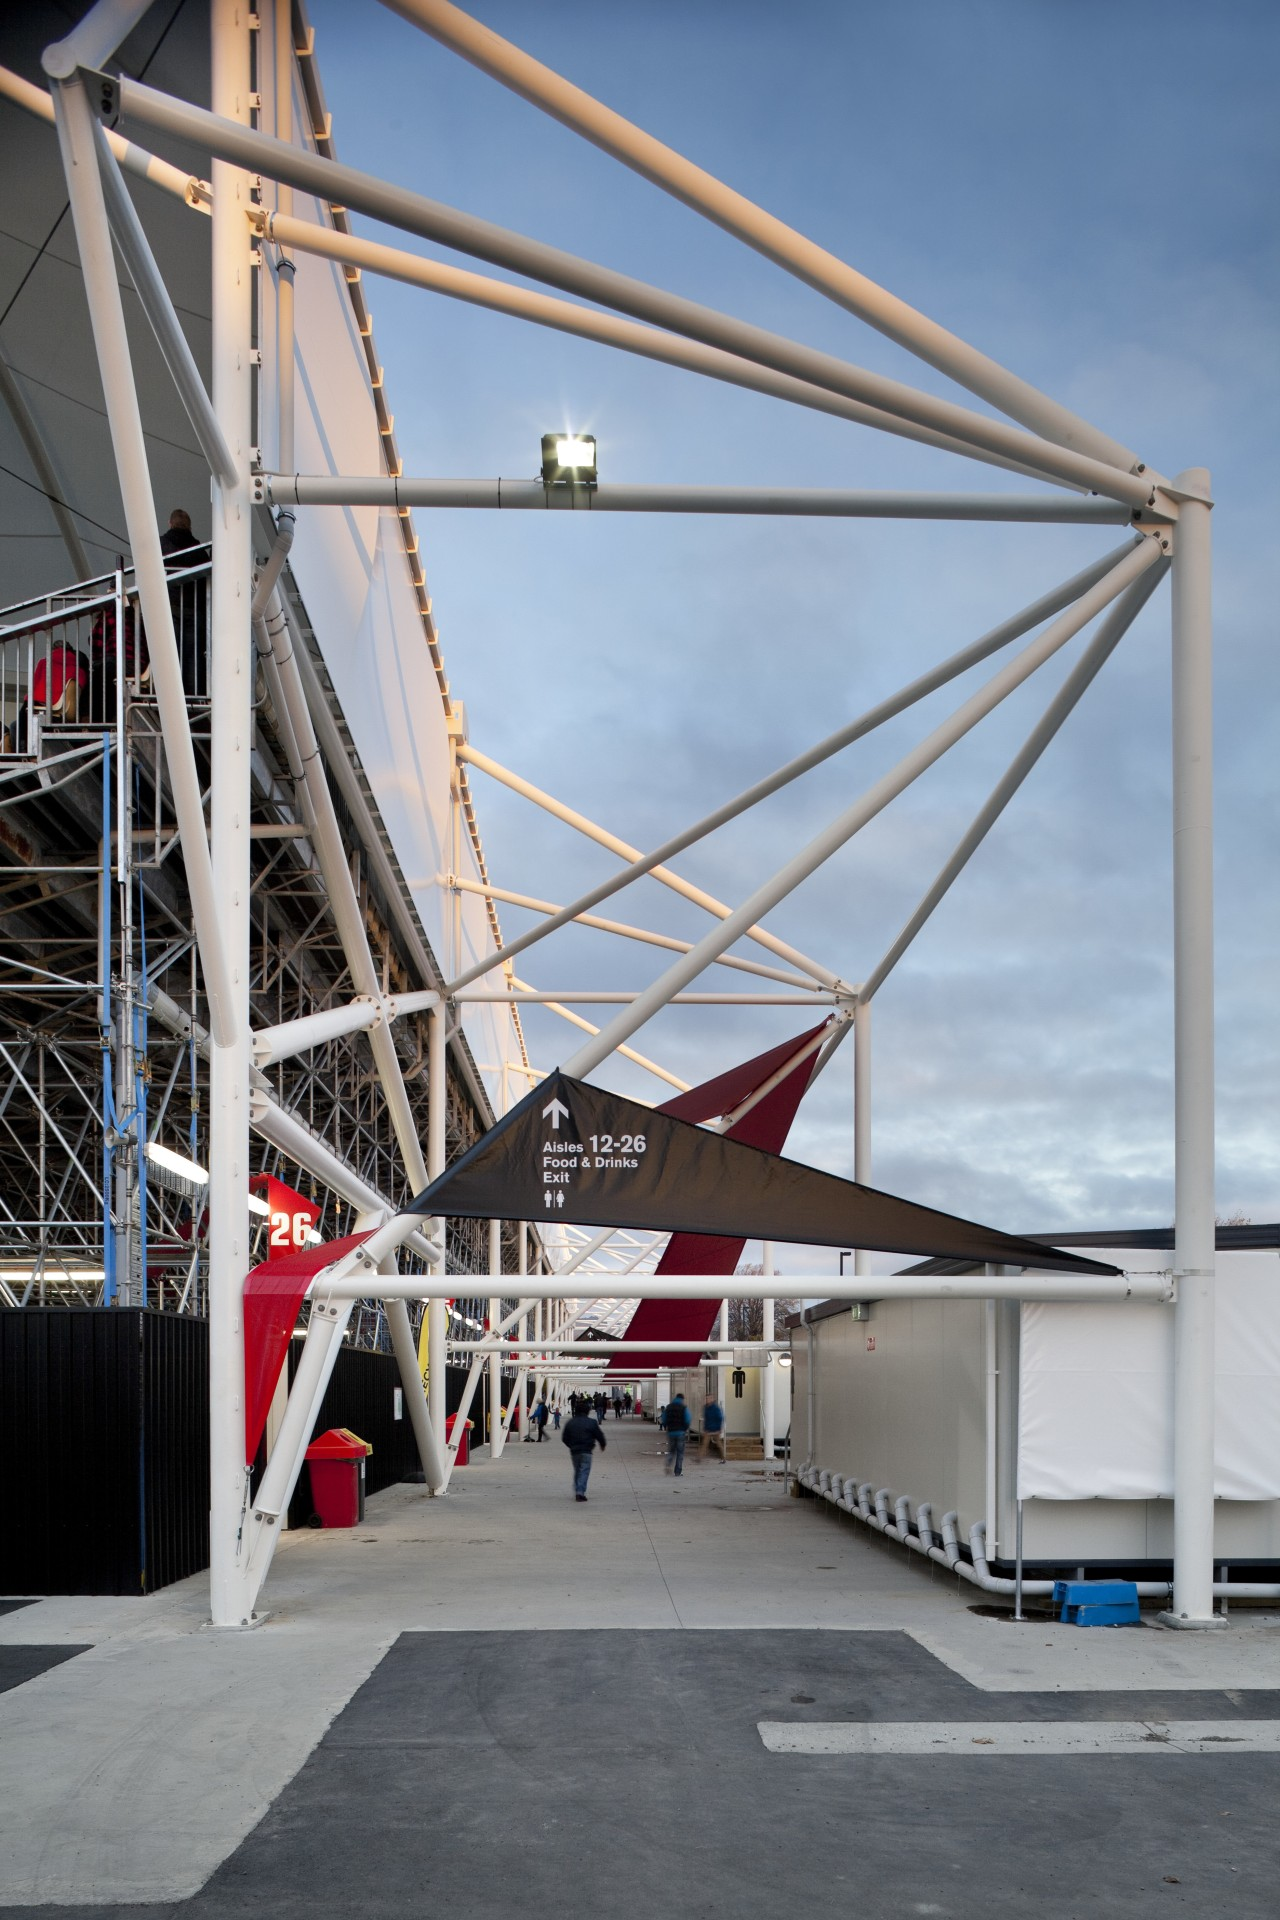 Structure of stadium. architecture, building, sky, structure, gray